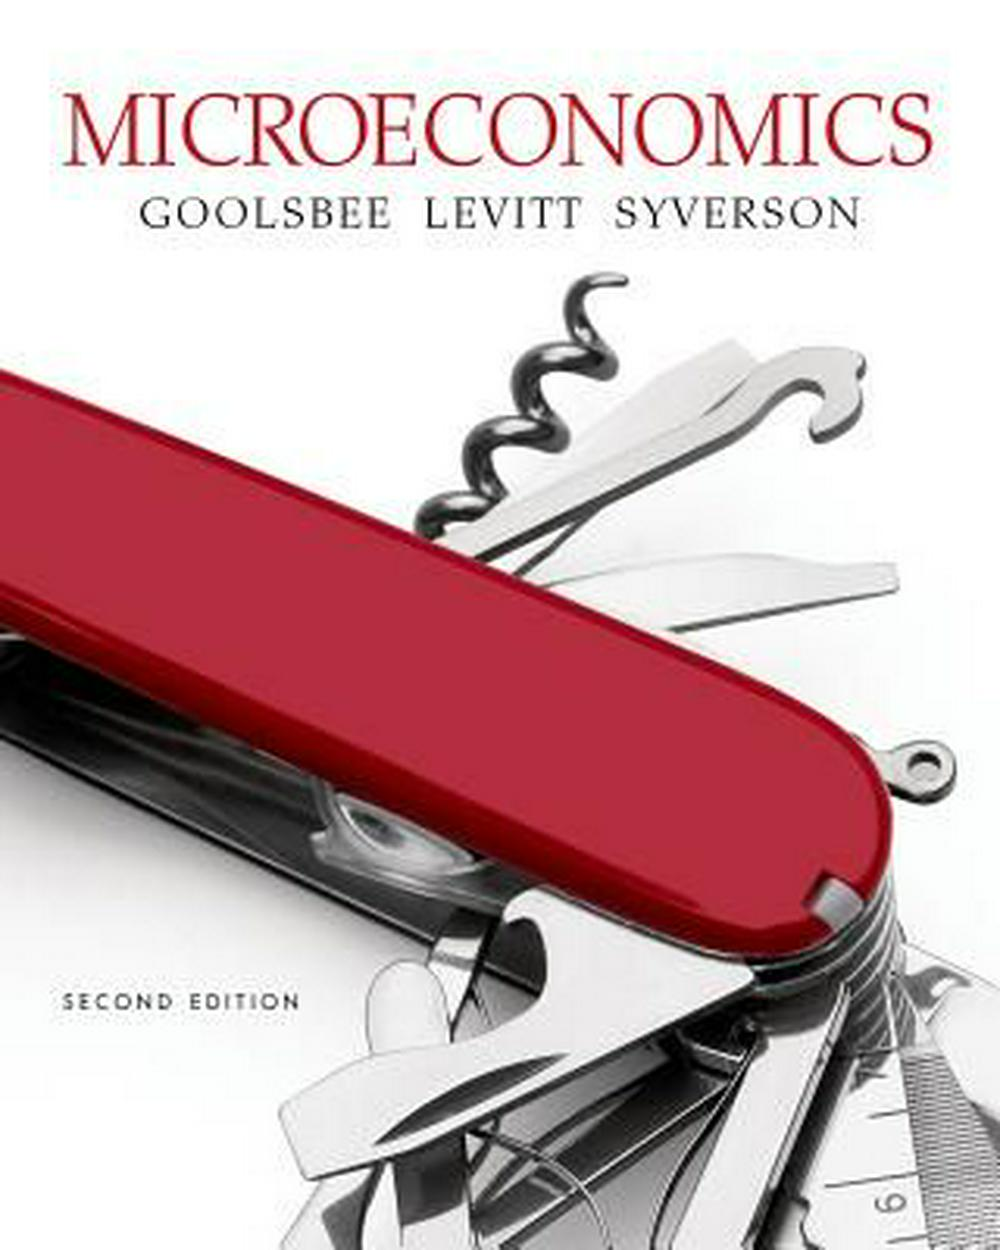 Microeconomics (Second Edition) by Austan Goolsbee, Chad Syverson, Steven D. Levitt, ISBN: 9781464187025